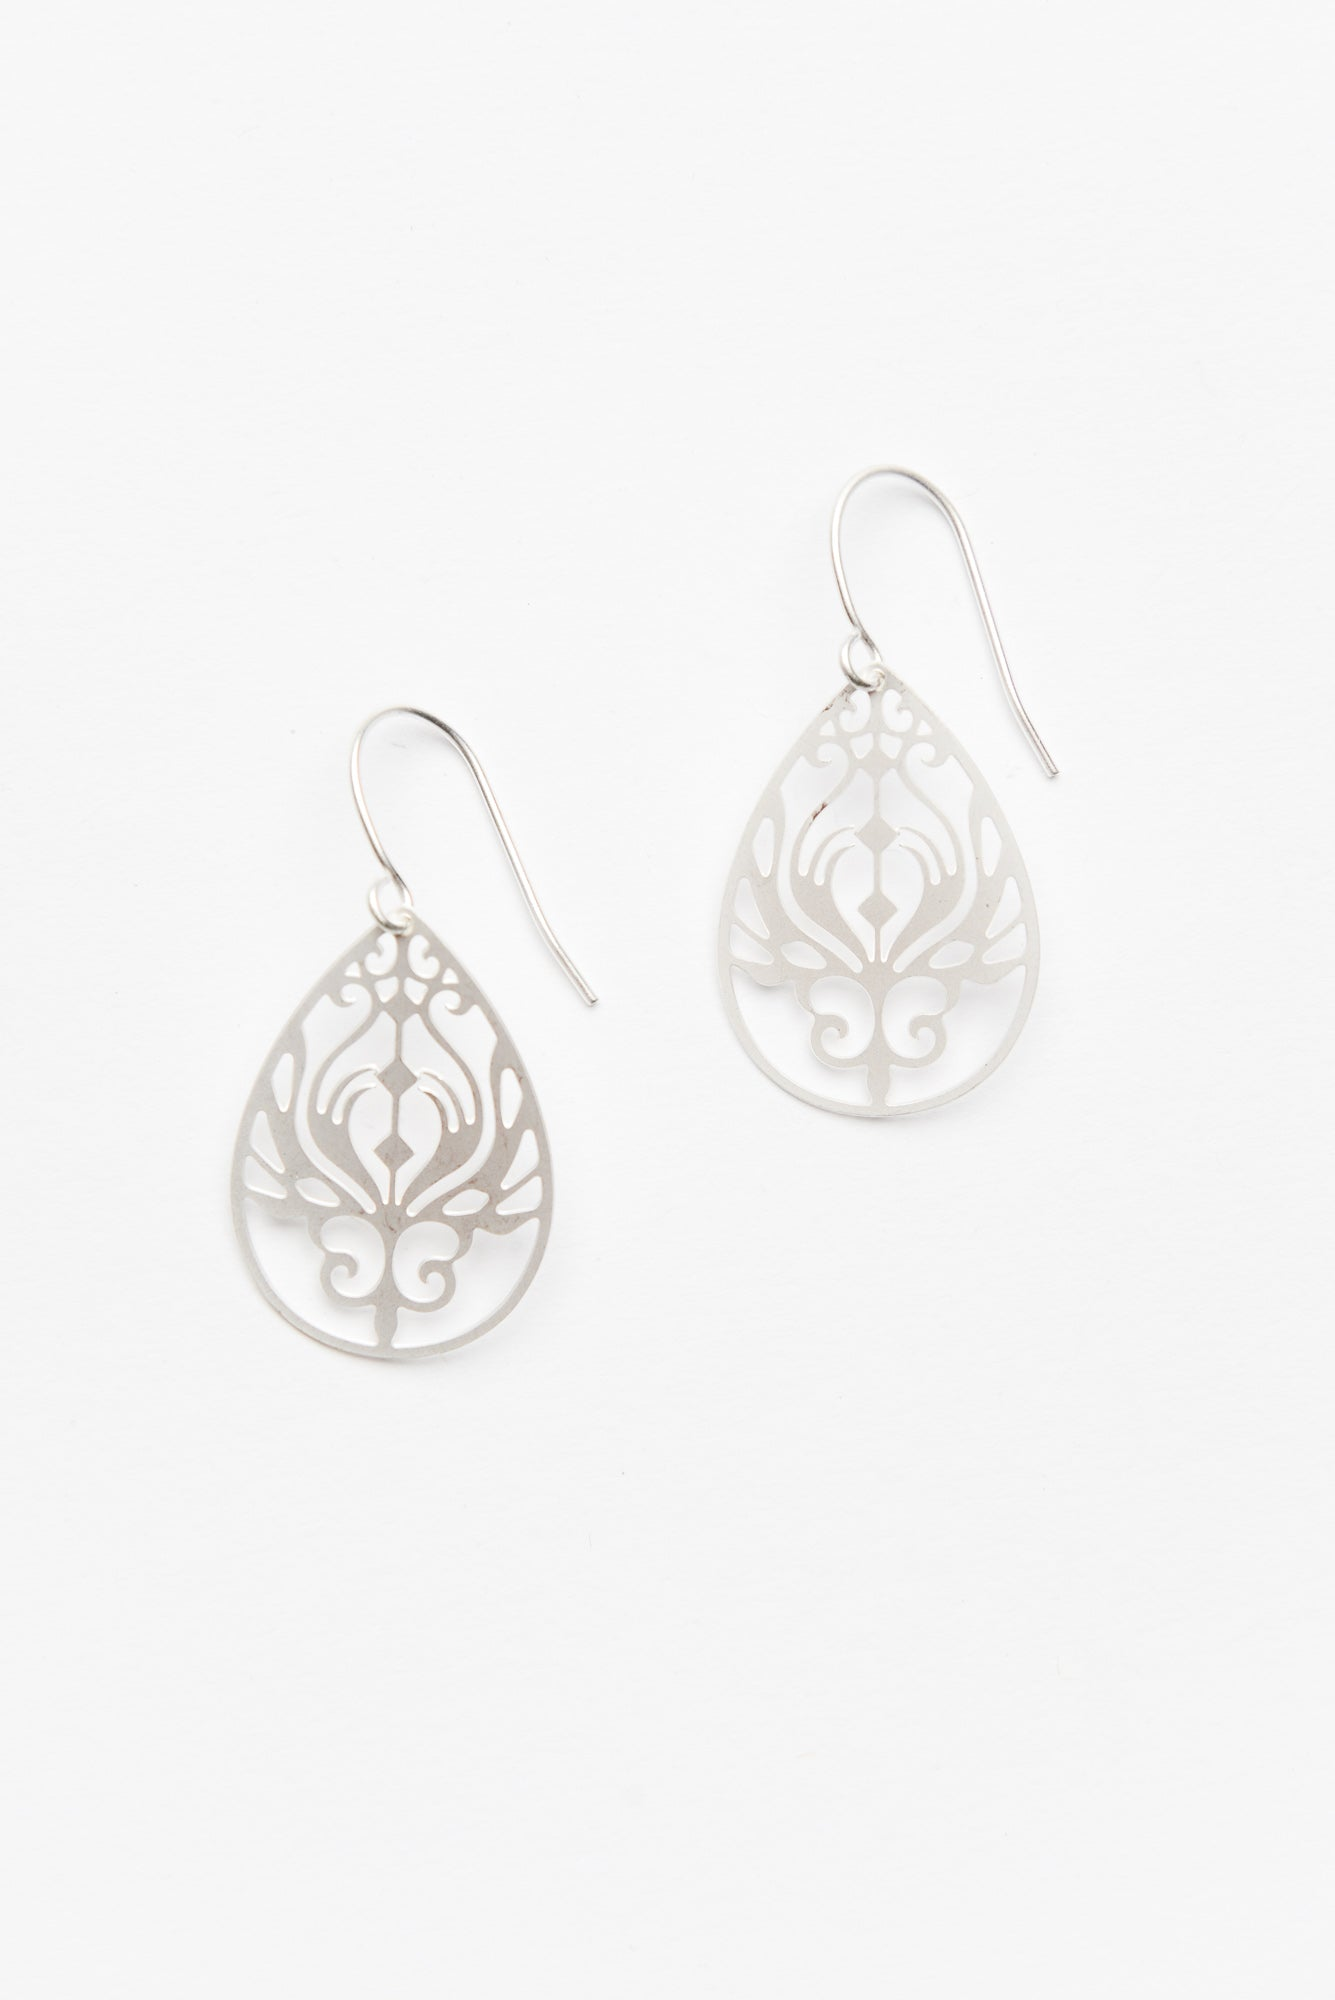 Silver Mini Baroque Filigree Earrings - Blue Bungalow ?id=8915154042937